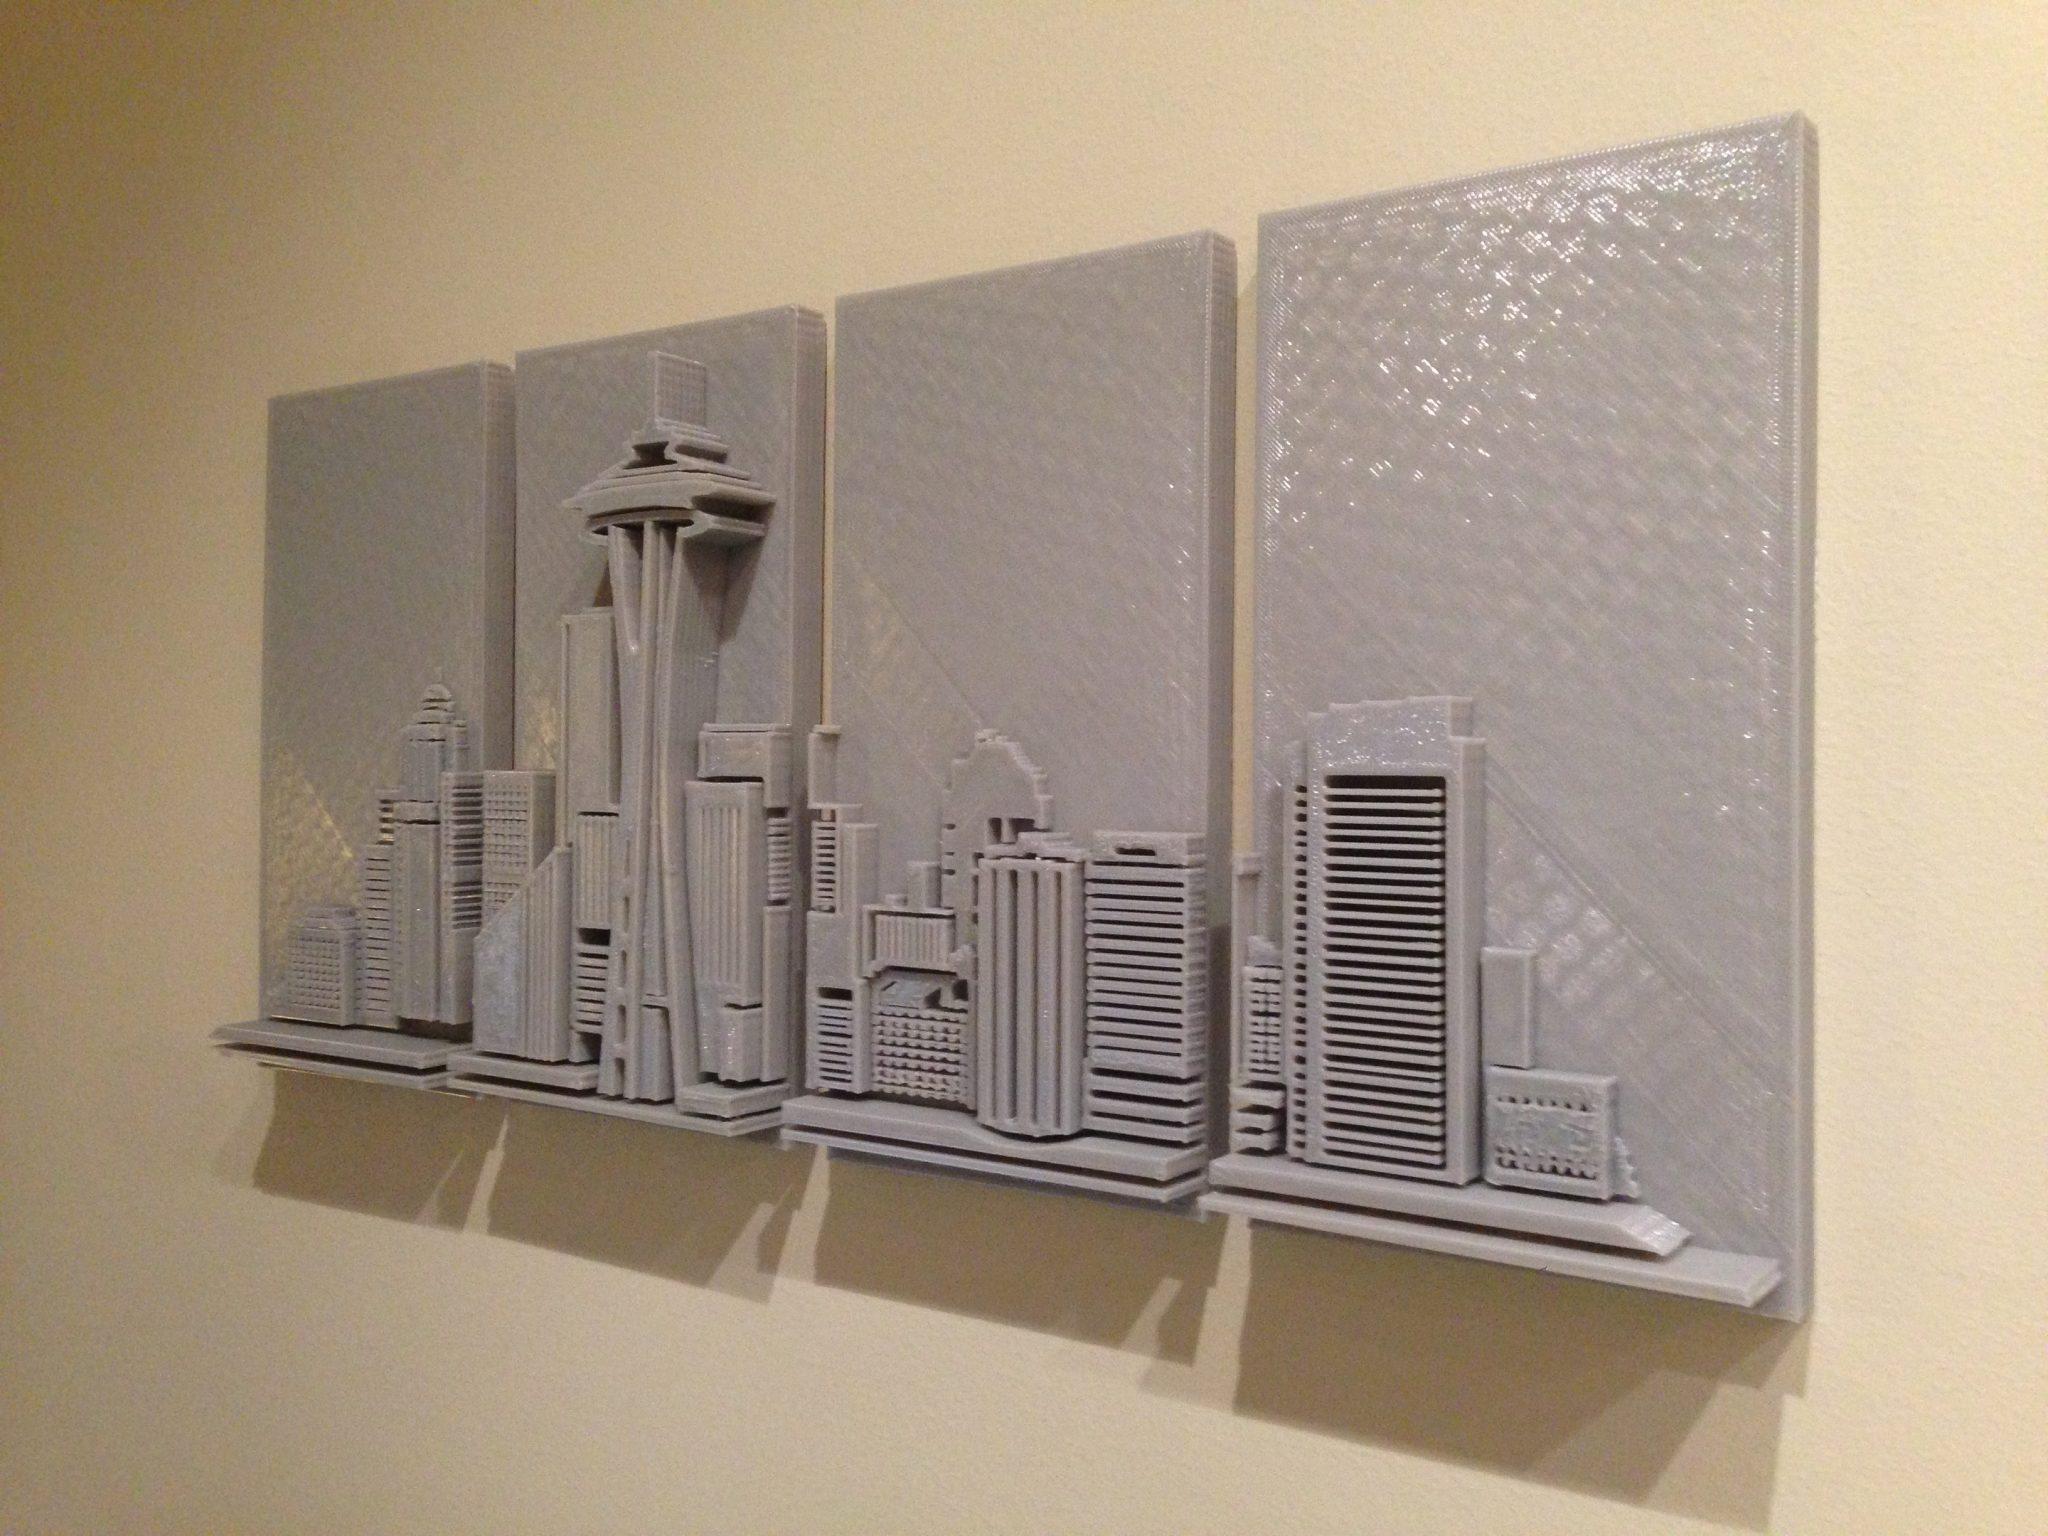 3D Wall Art For Sale | Home Decor Ideas Regarding 3D Printed Wall Art (View 9 of 20)